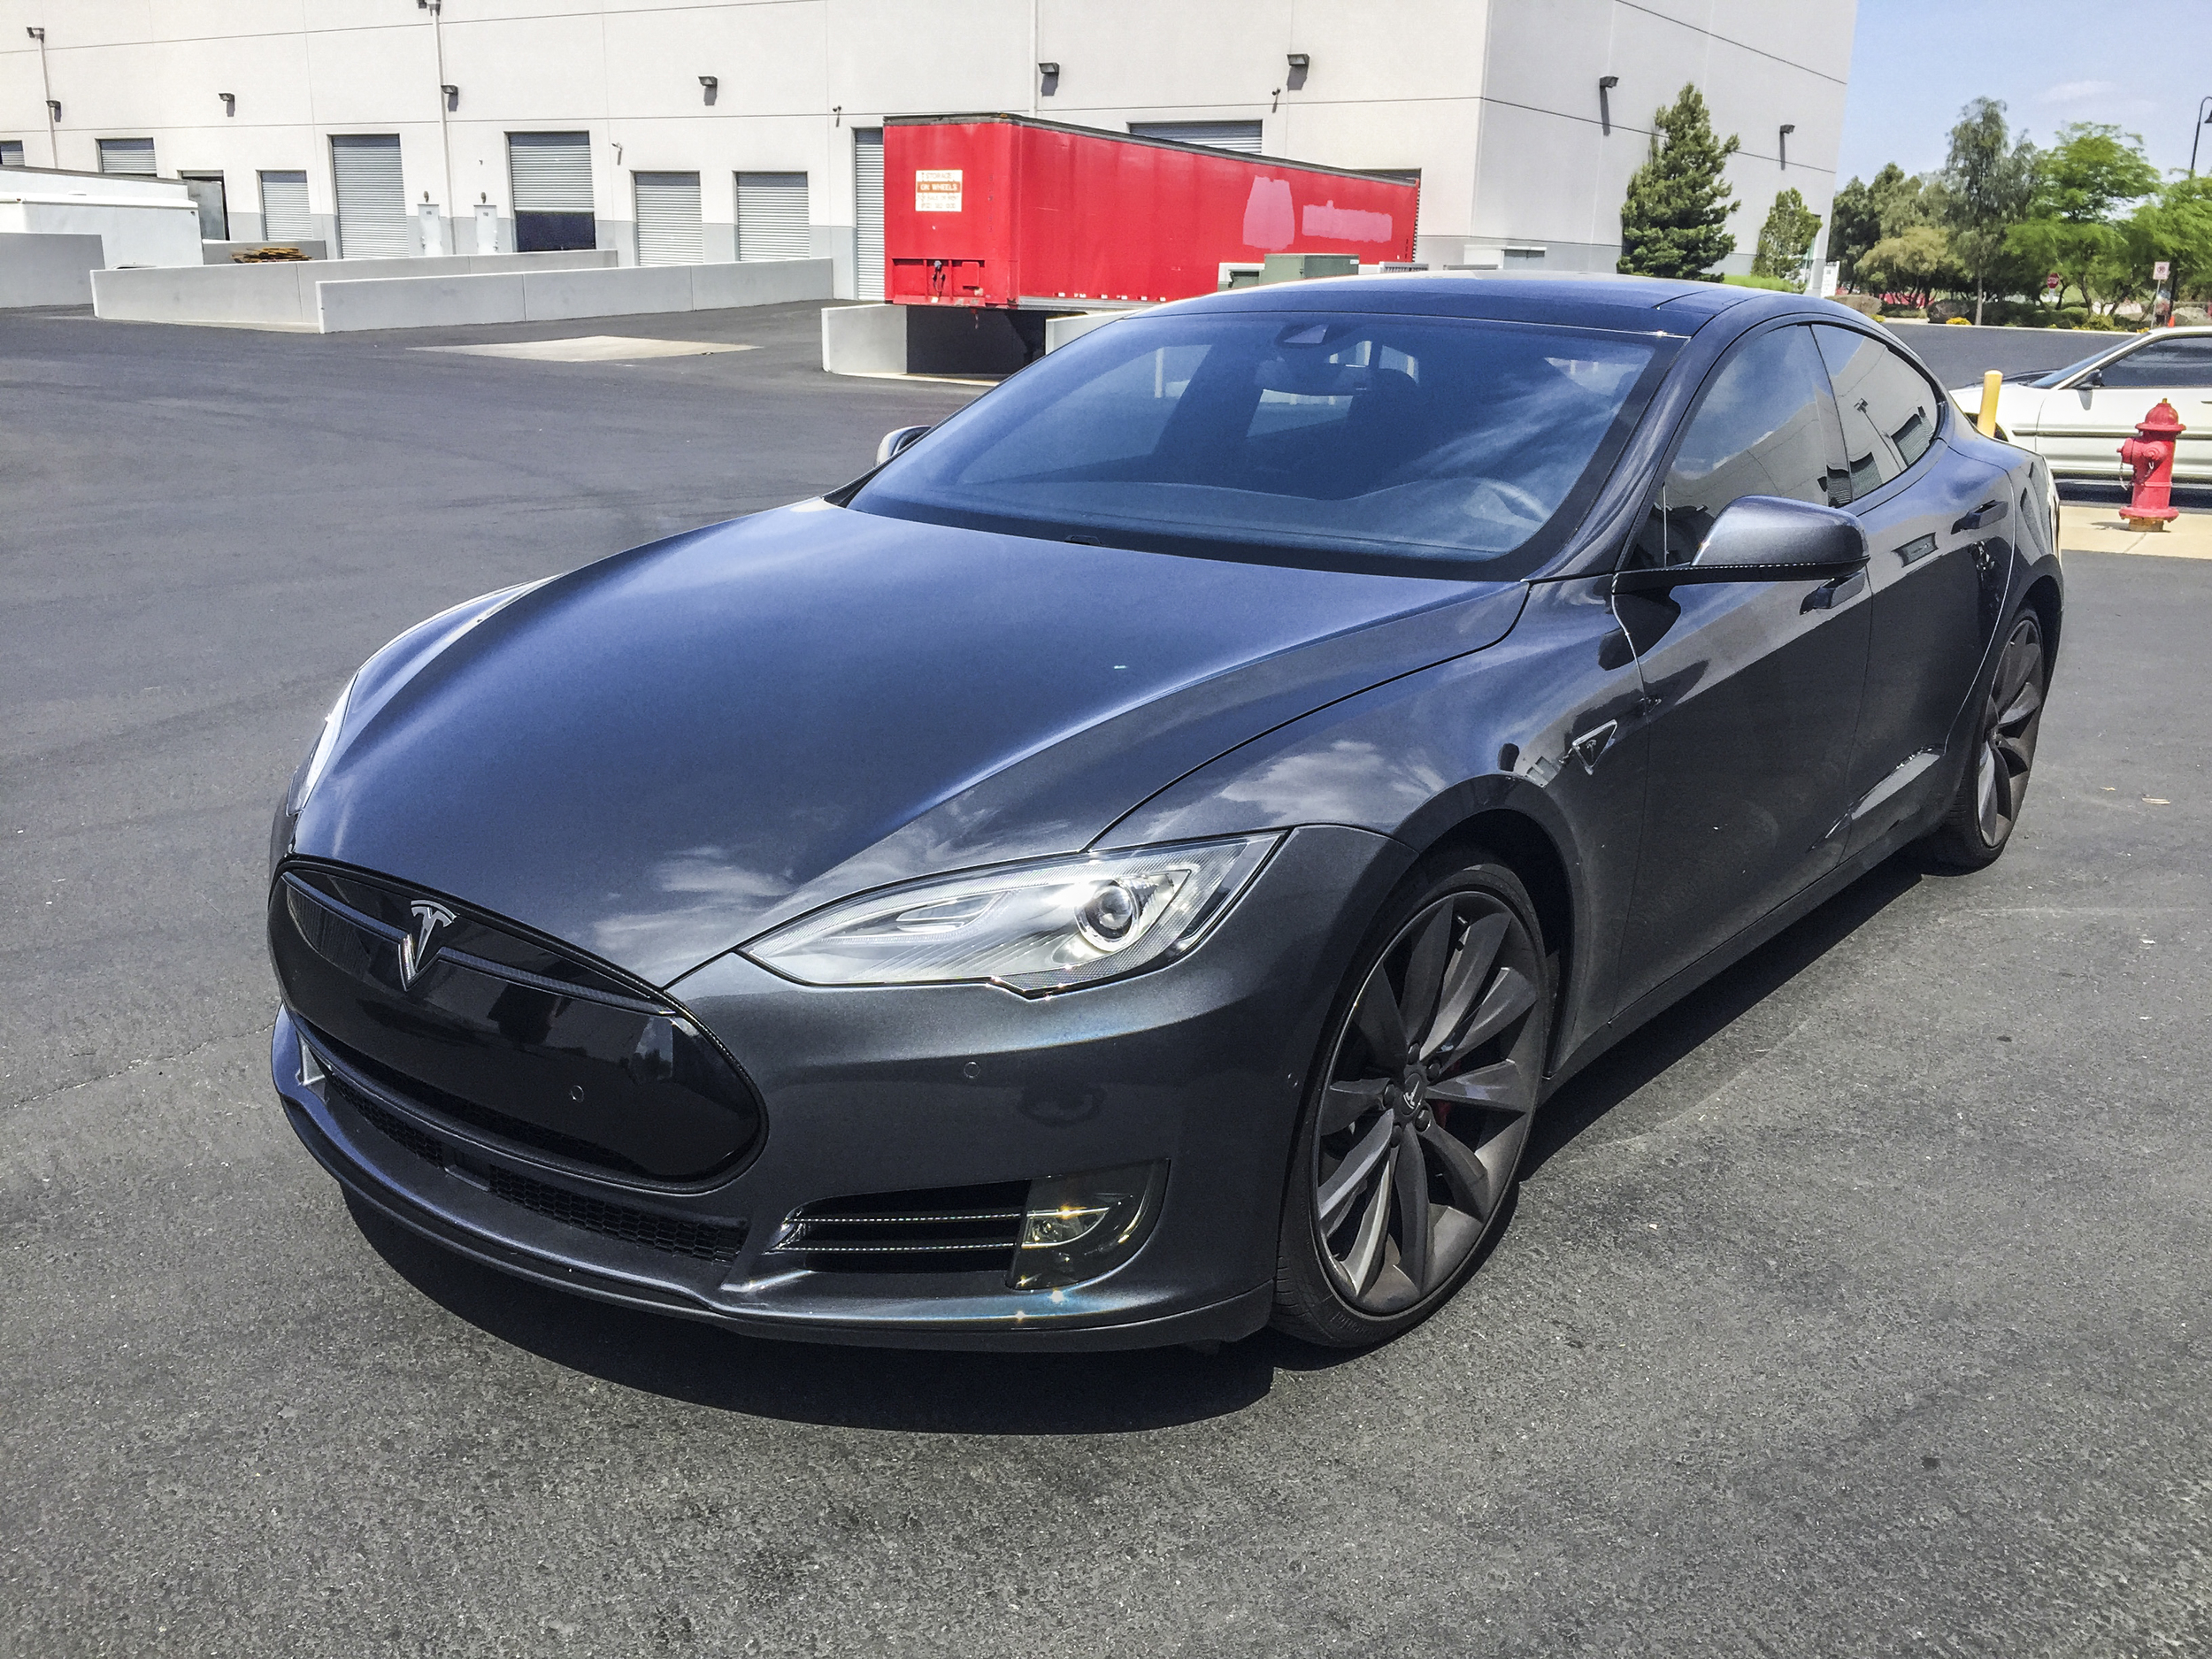 Tesla Model S - Carbon Fiber Chrome Delete — Incognito Wraps